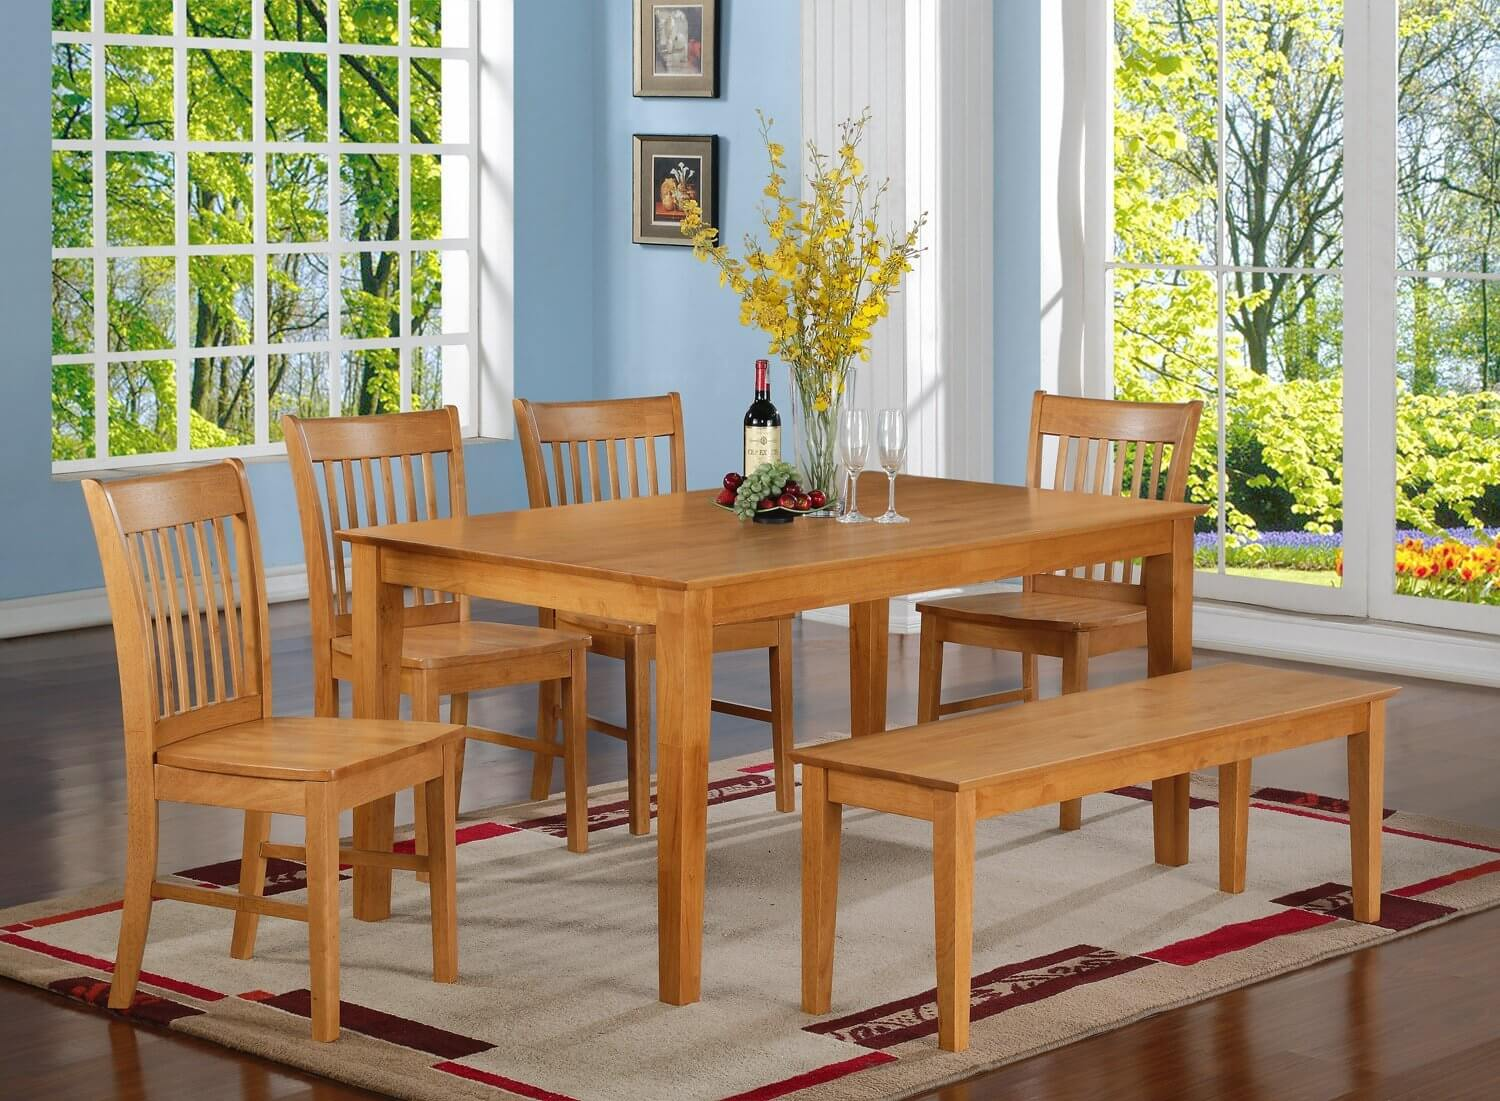 Oak Finish Six Piece Bench Style Dining Room Set With Large Rectangle Table.  Itu0027s